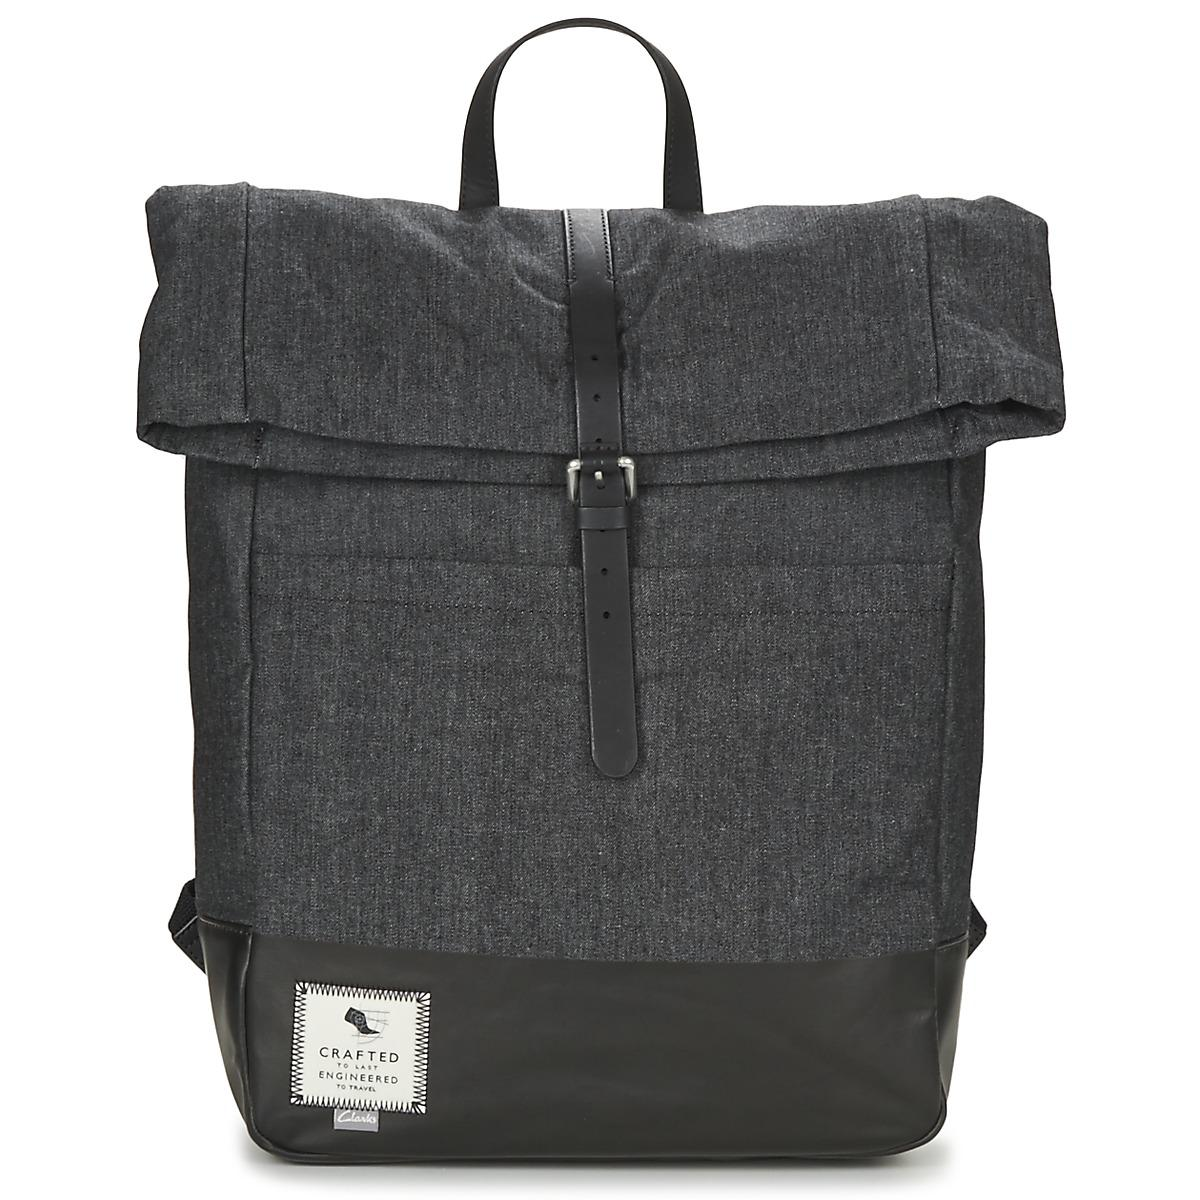 quality products special section great fit The Millbank Men's Backpack In Grey